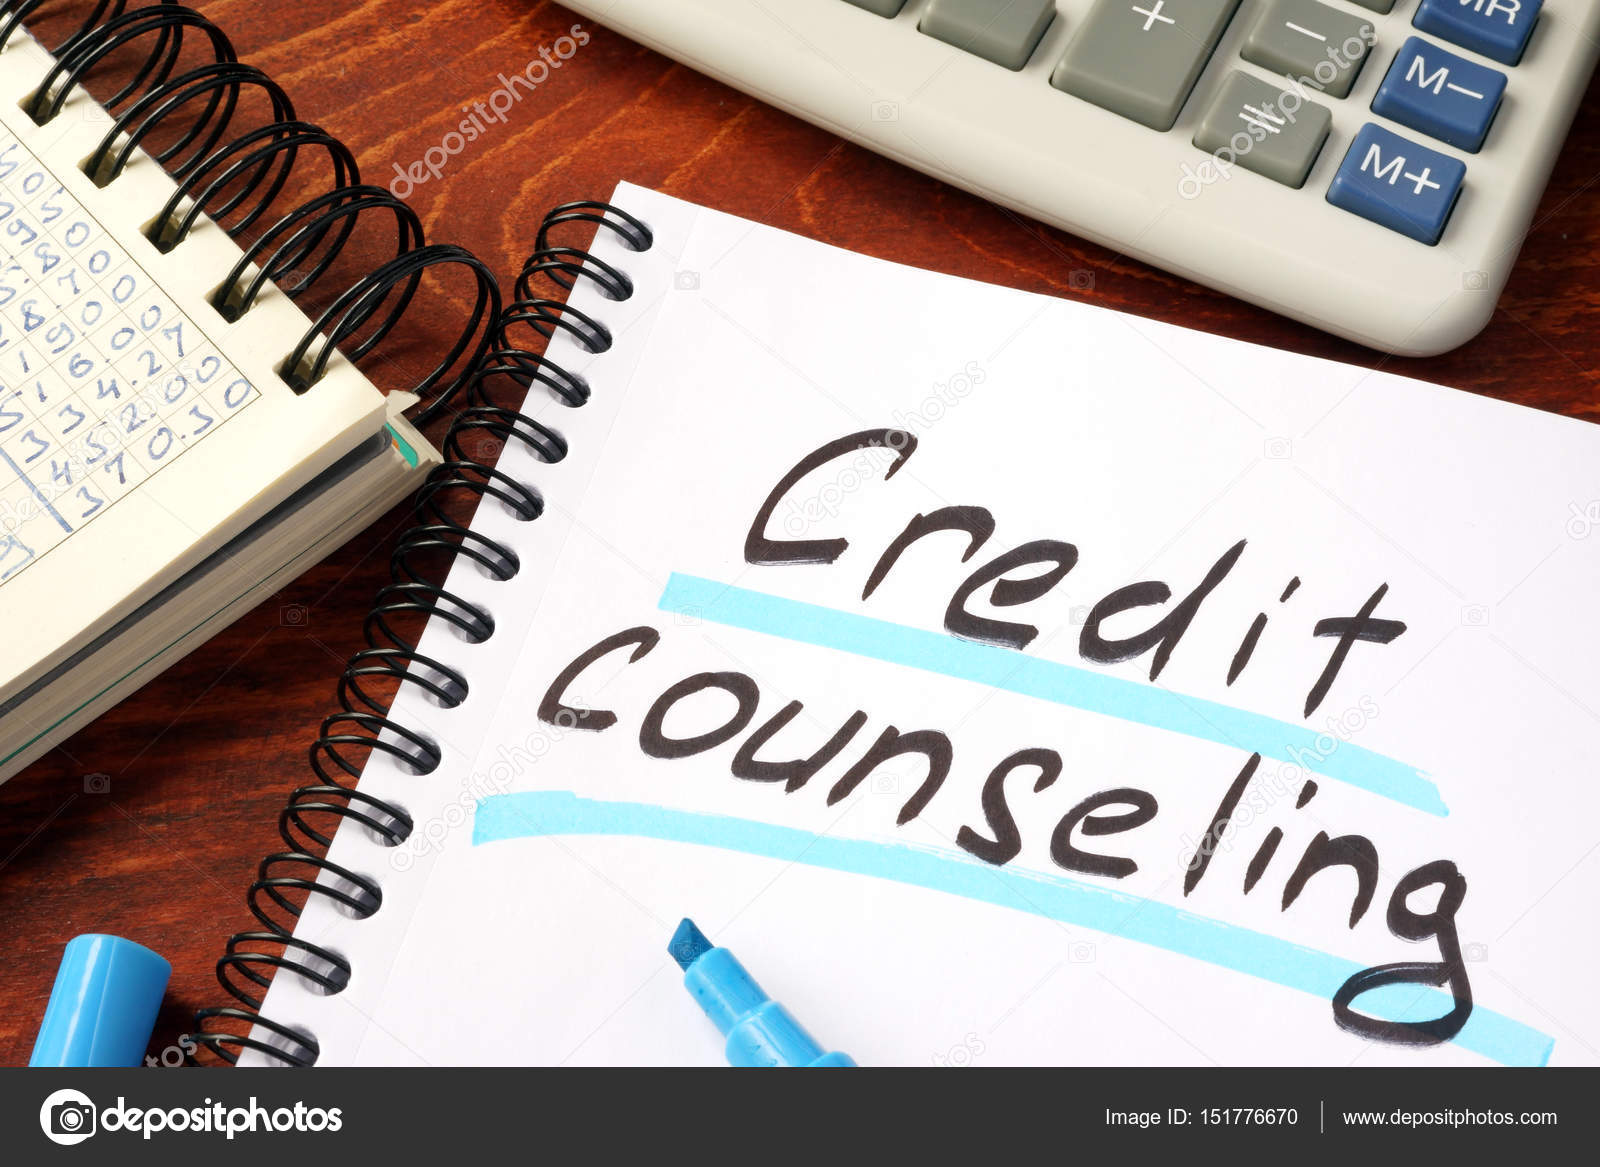 Debt Consolidation Counseling - Know Your Options